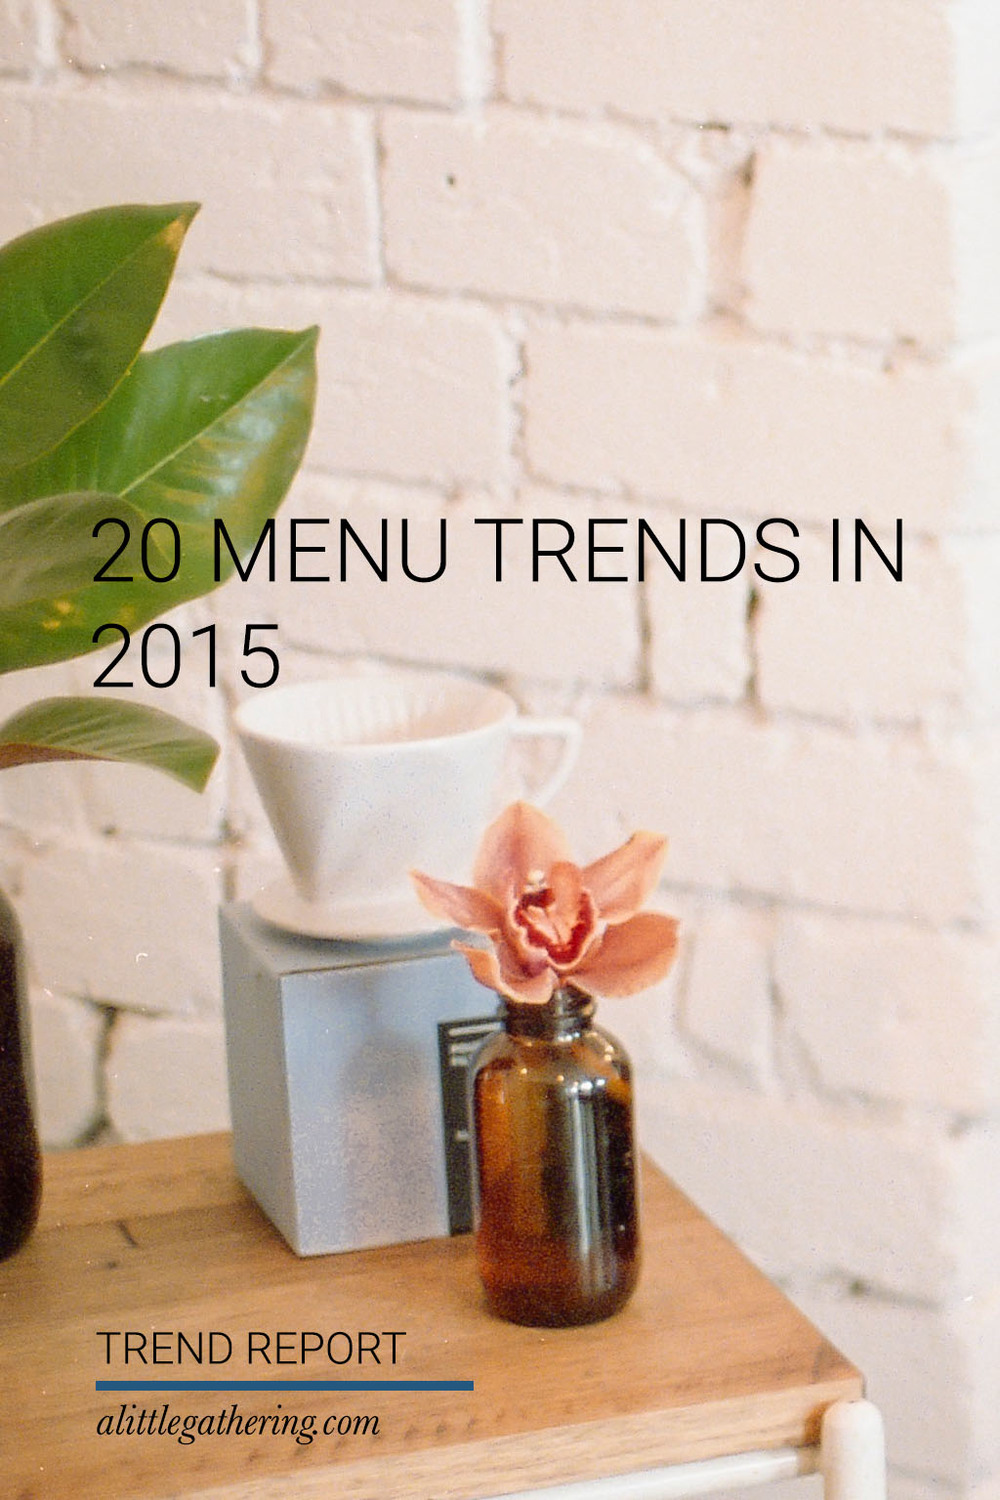 20 menu trends in 2015